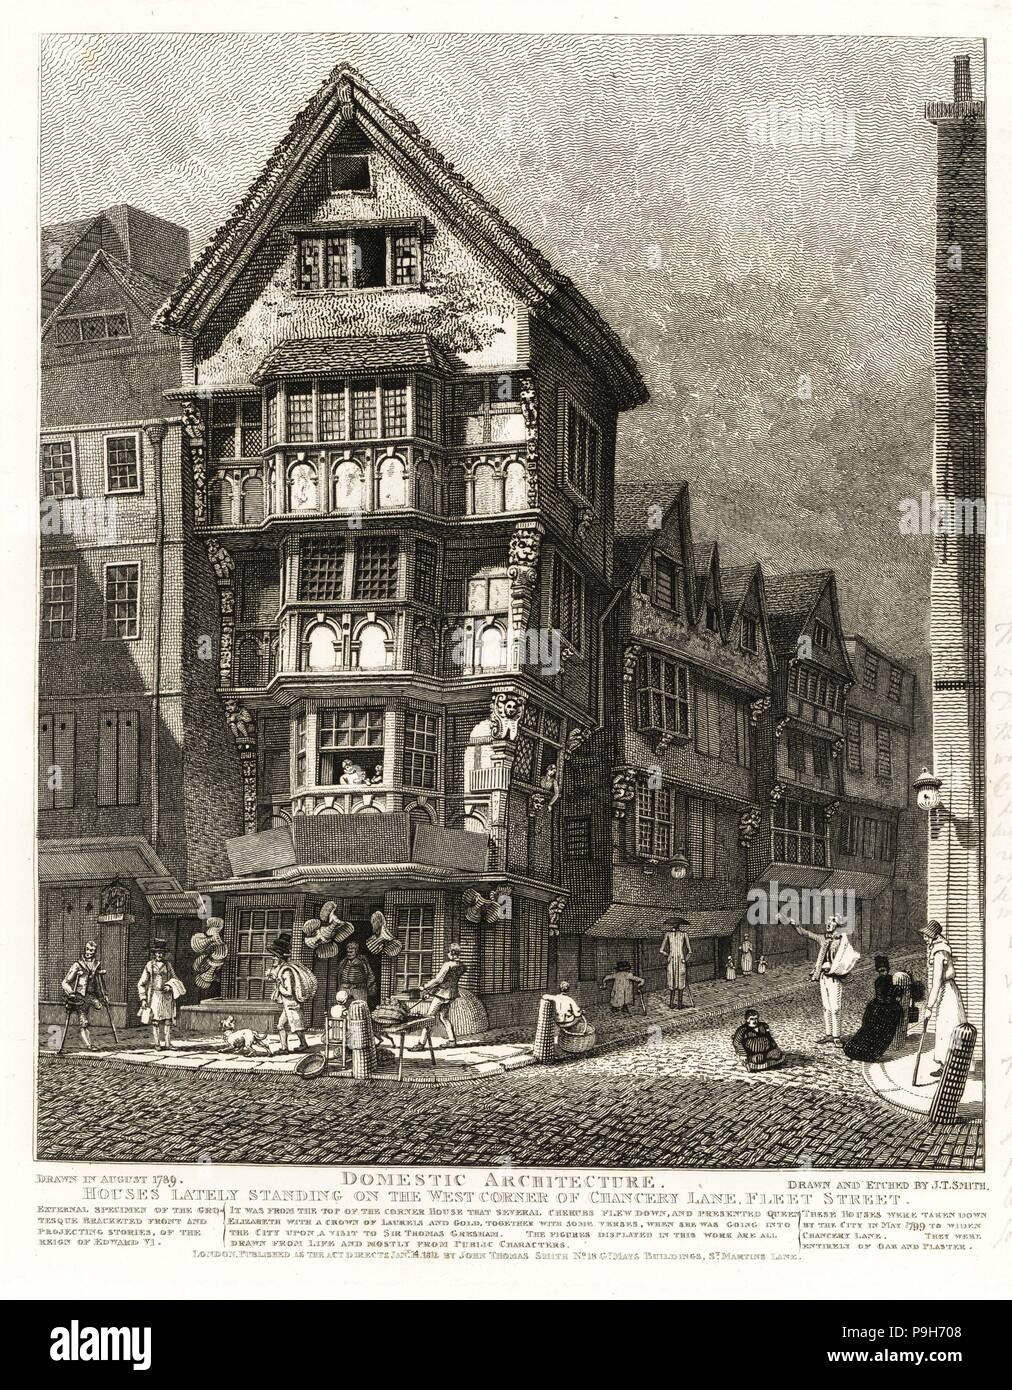 Tudor houses on the corner of Chancery Lane, Fleet Street, 1789. External specimen of the Grotesque Bracketed Front and Projecting Stories of the reign of Edward VI. Demolished 1799. The street characters include the Welsh dwarf Jeremiah Davies, legless Samuel Horsey, King of the Beggars. Copperplate engraving drawn and etched by John Thomas Smith from his Topography of London, 1812. - Stock Image